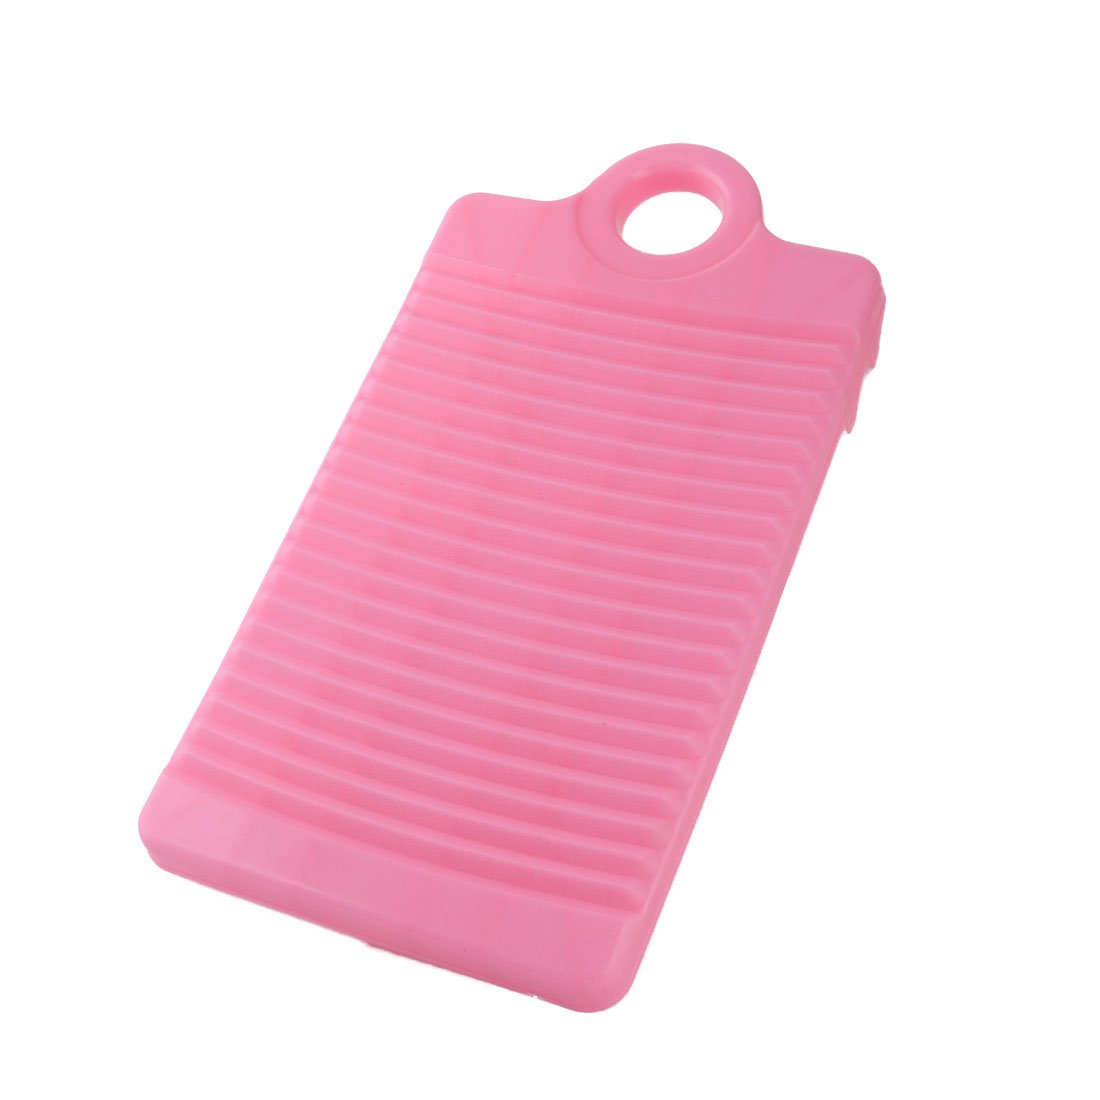 uxcell Plastic Laundry Bathroom Rectangle Clothes Garment Pants Washing Board Plate Pink US-SA-AJD-181472